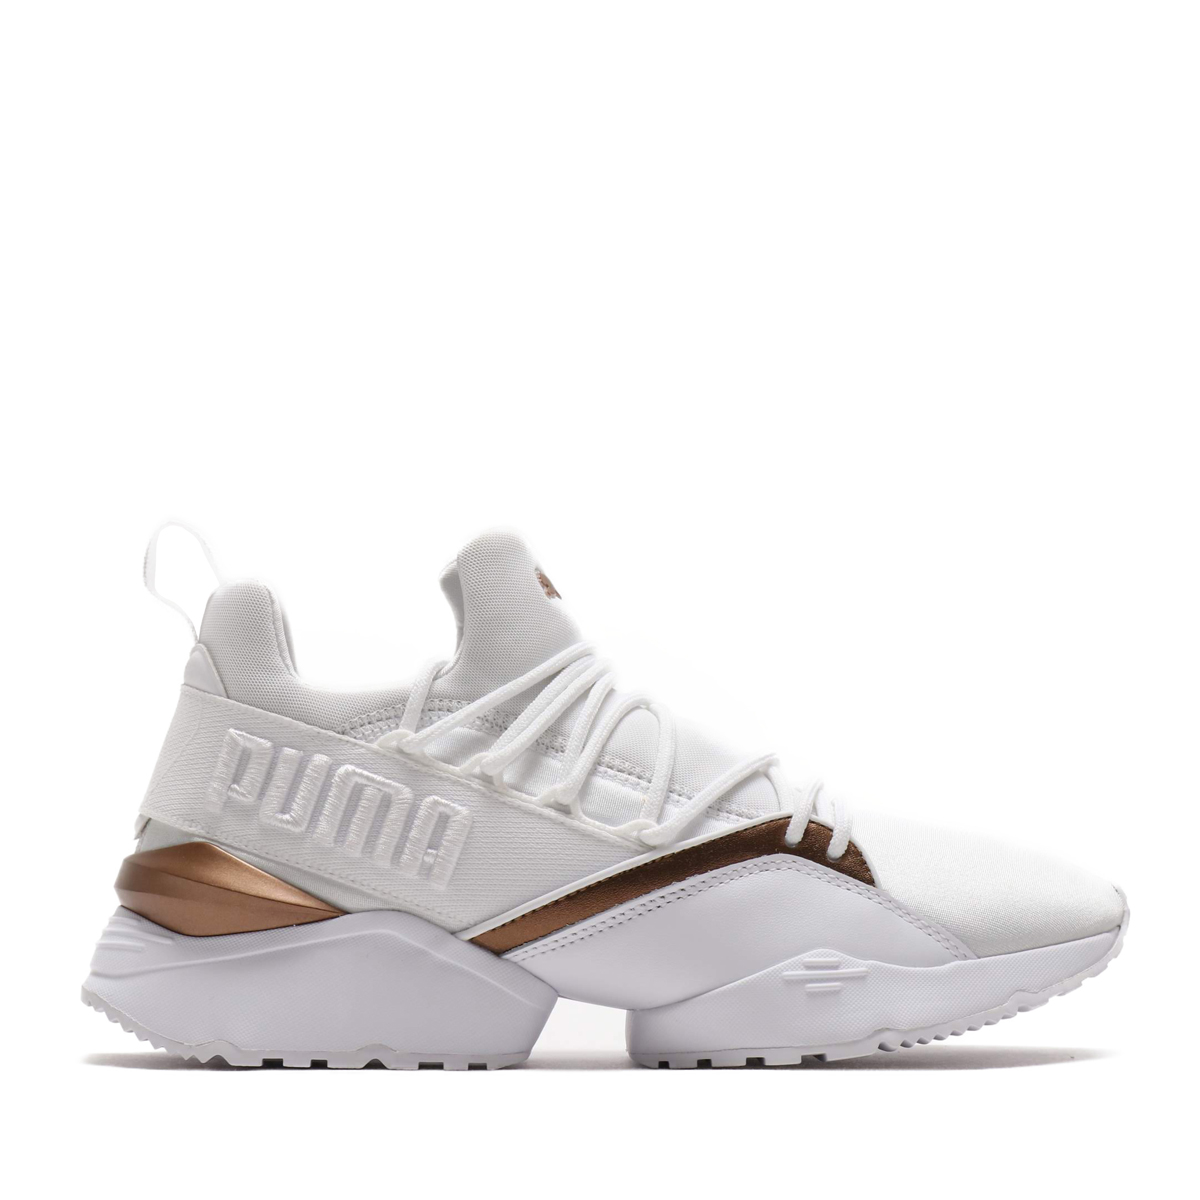 PUMA MUSE MAIA LUXE WMNS(プーマ